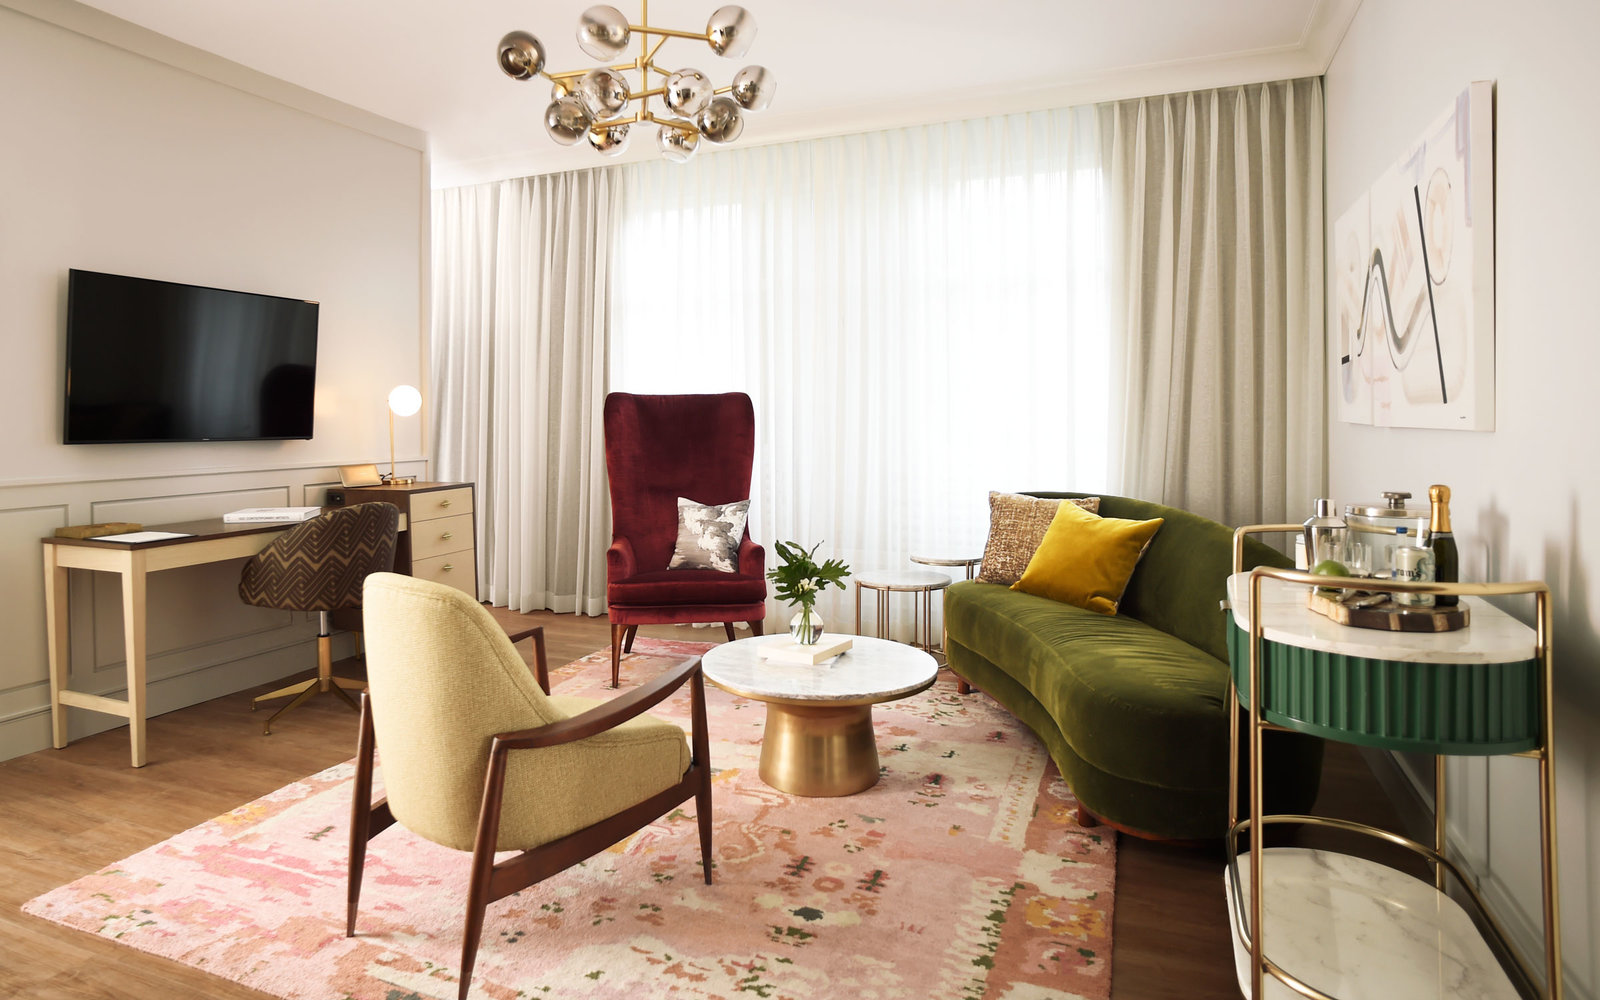 West Elm Launches Boutique Hotel Line (And It's Shoppable)